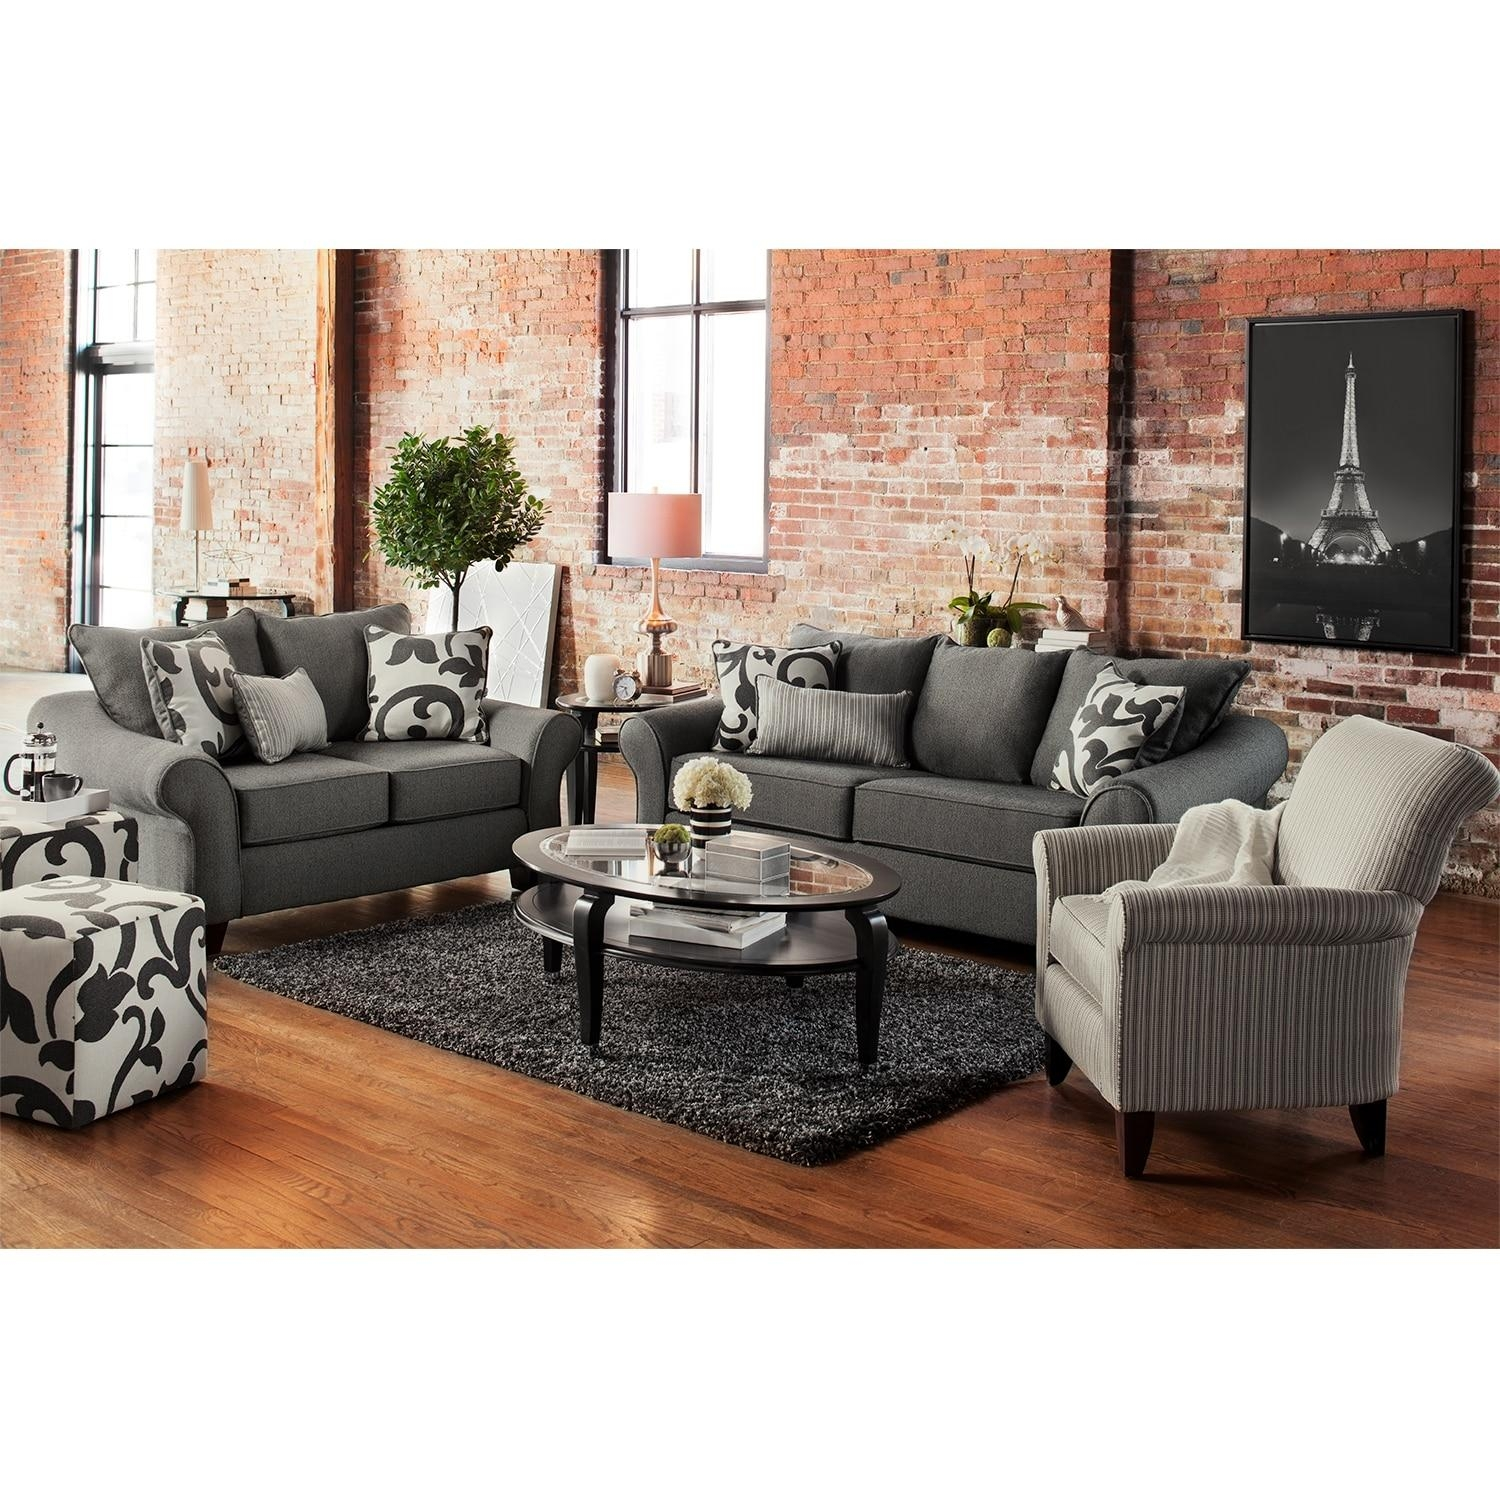 Colette Sofa And Accent Chair Set – Gray | Value City Furniture In Sofa And Accent Chair Set (View 7 of 20)